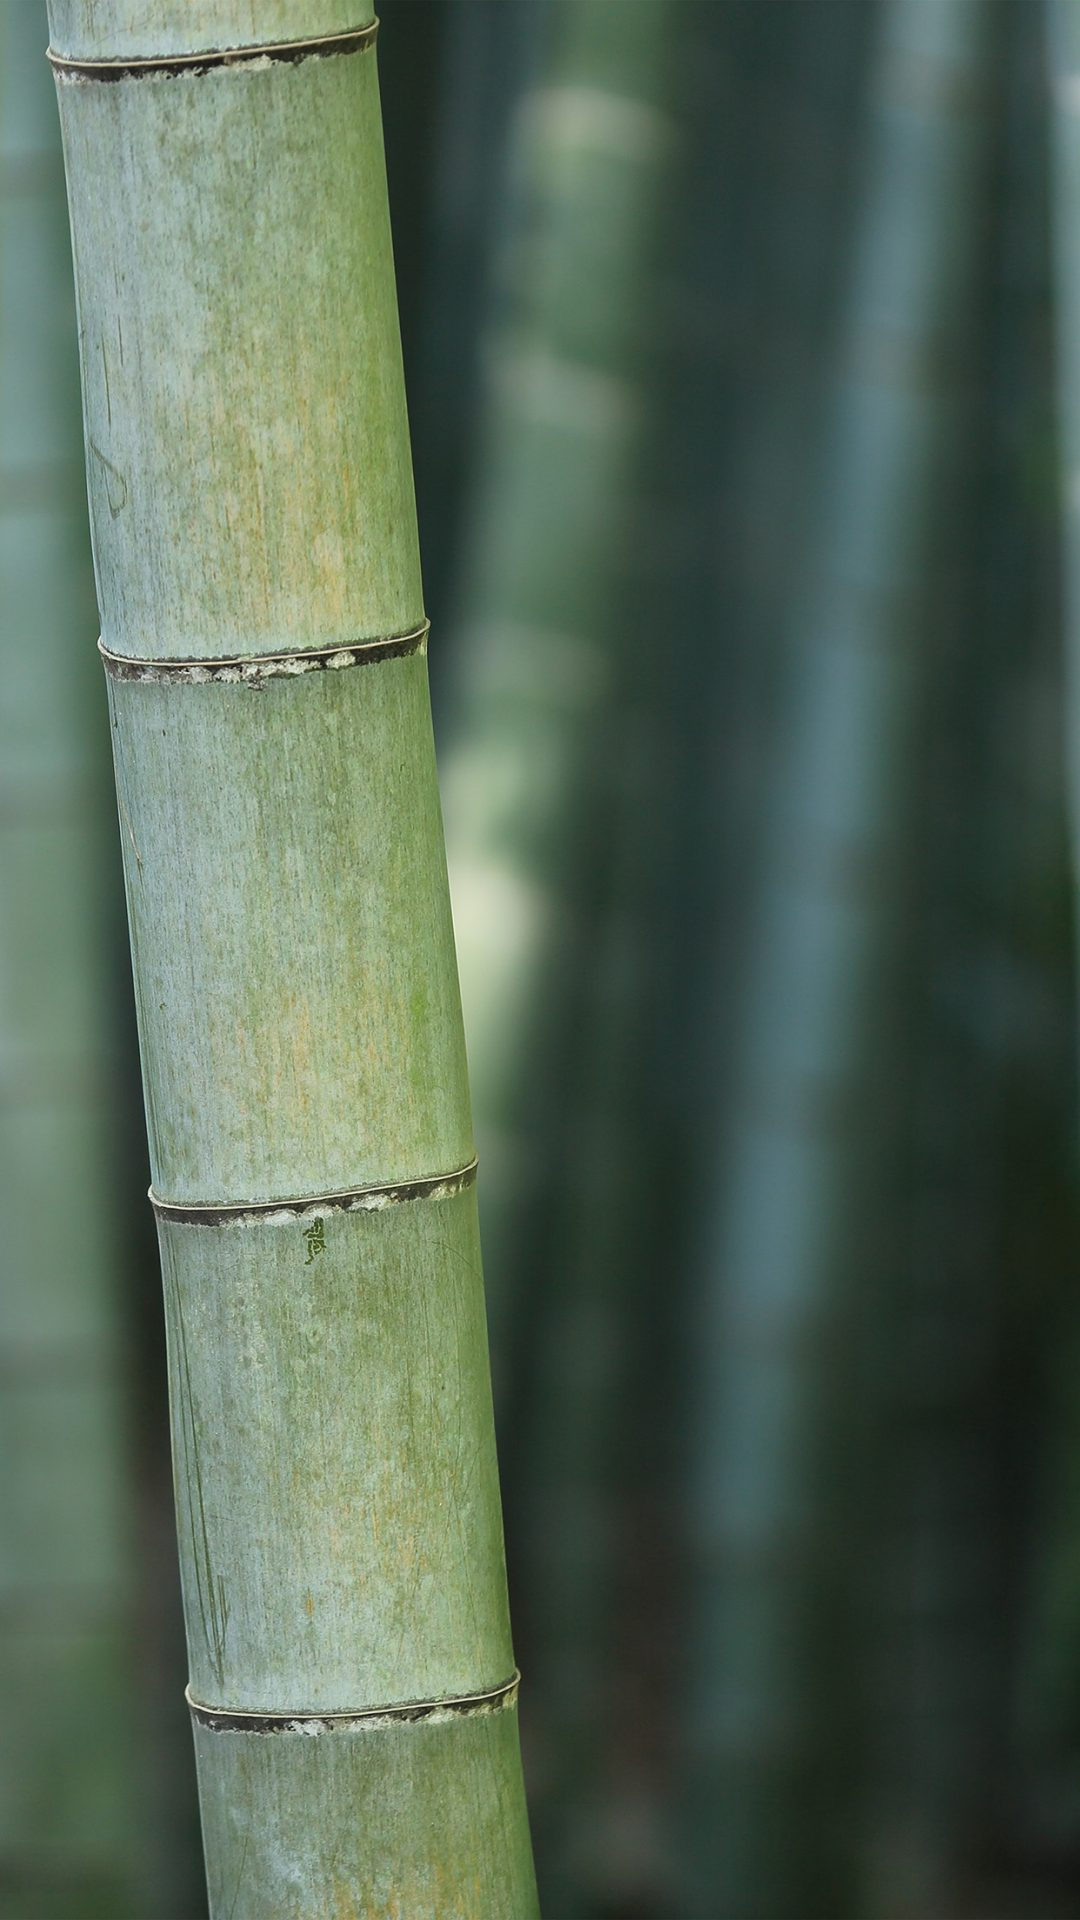 Bamboo Nature Tree Green